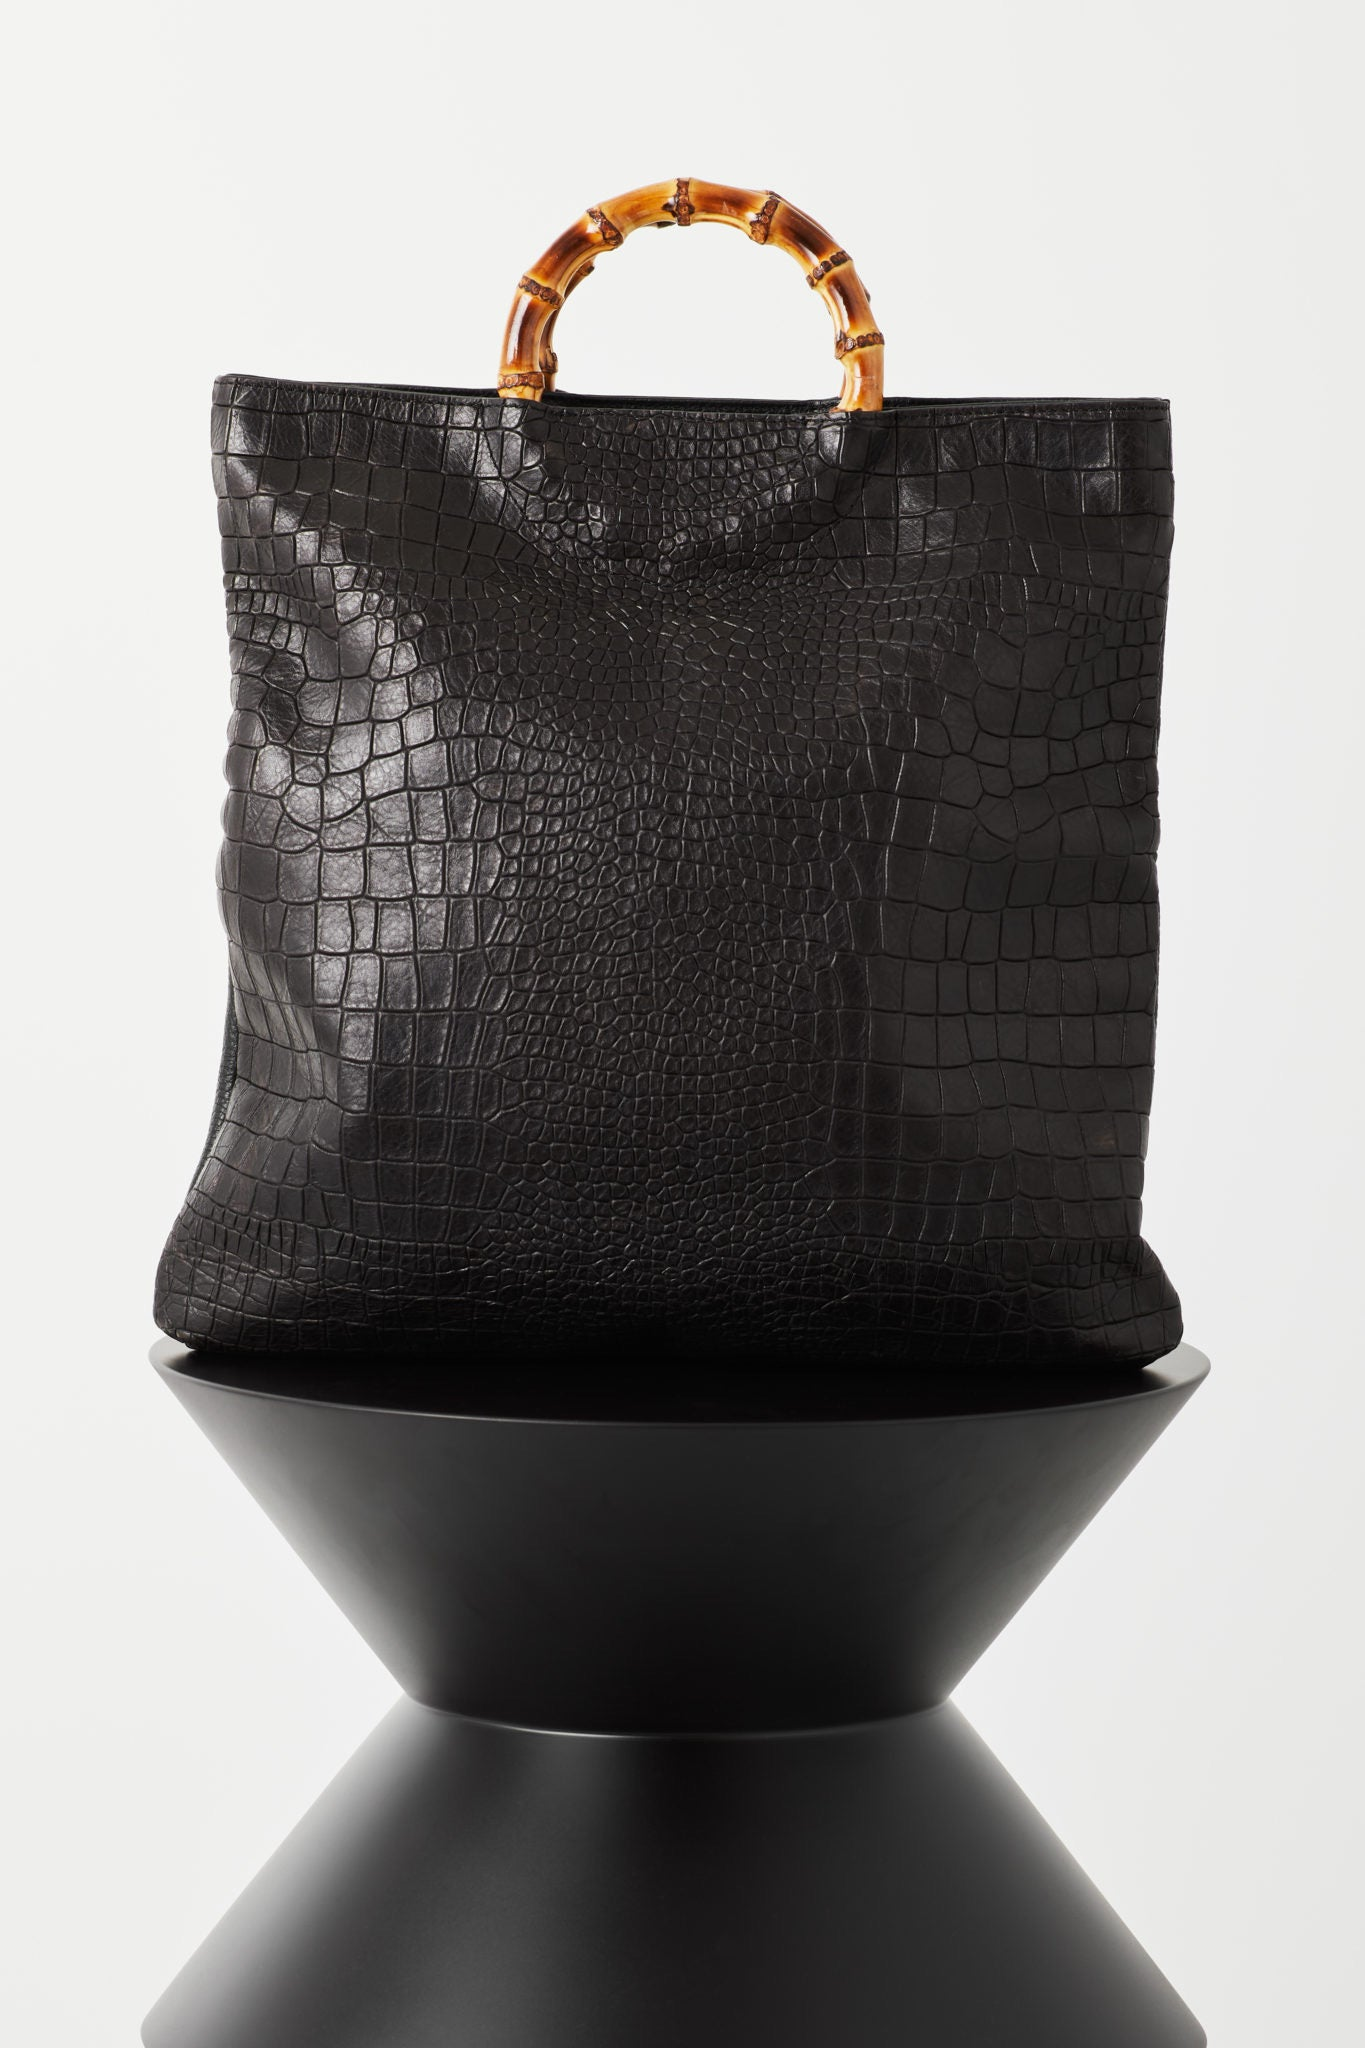 VASH II ELISE Toto / bamboo handle clutch bag / black croc